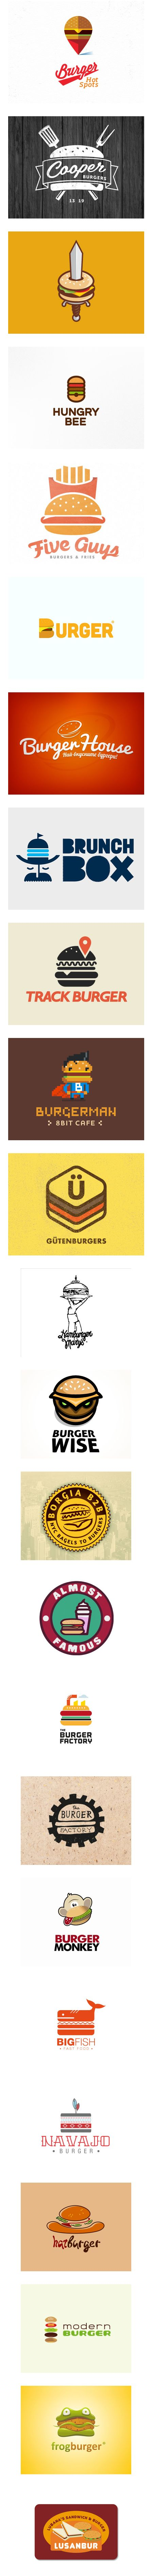 Yummy looking logos that match up with the product they are selling. Aiming at a young cool kids crowd it apears. Cool ways of looking at a burger design in many different ways. Its funky its fresh but is it tasty...looking at these images are almost filling. Are we eating food or watching cartoons?!